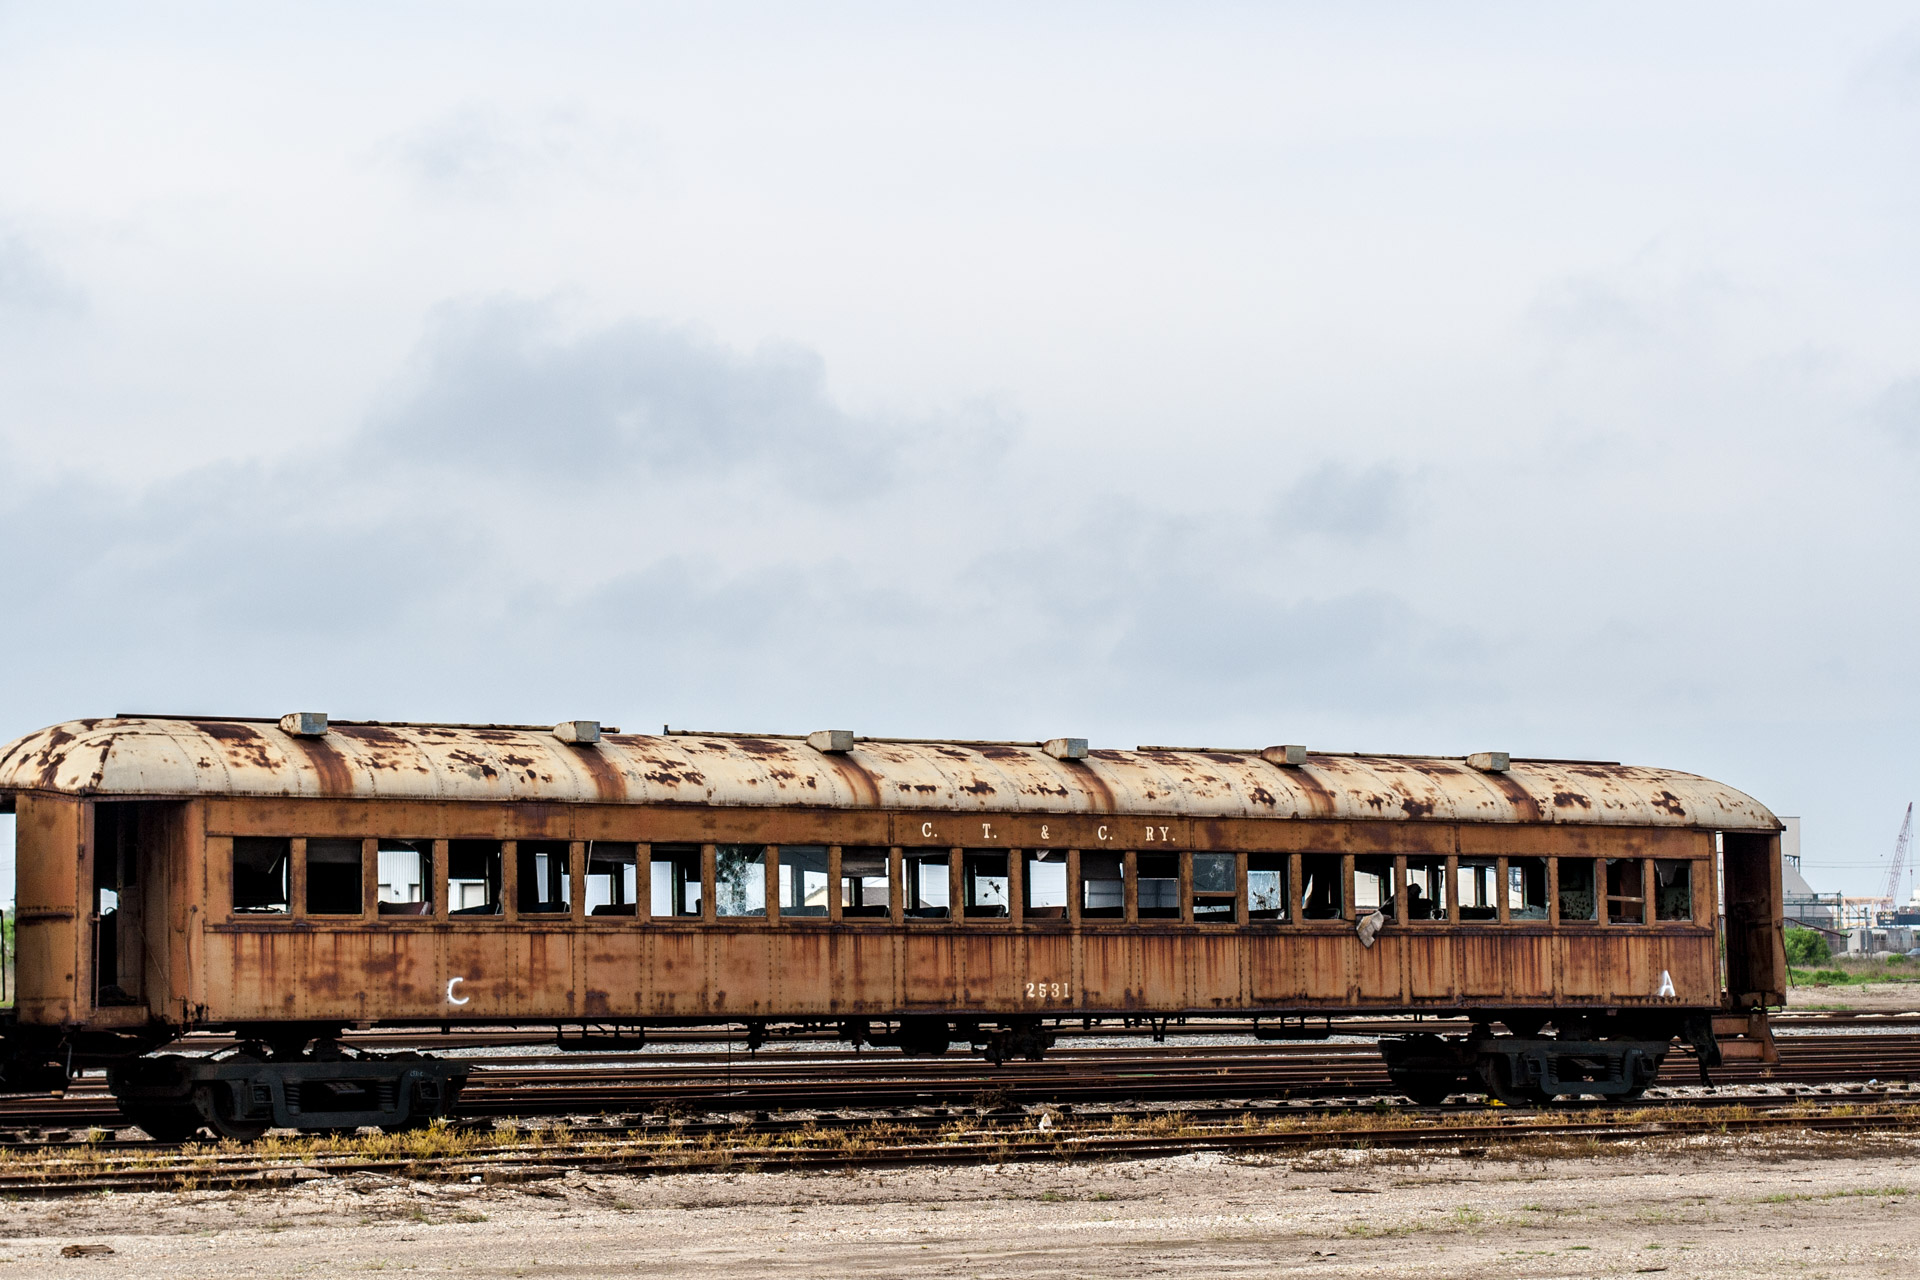 Galveston, Texas - Last Stop Passenger Train Car (side right)